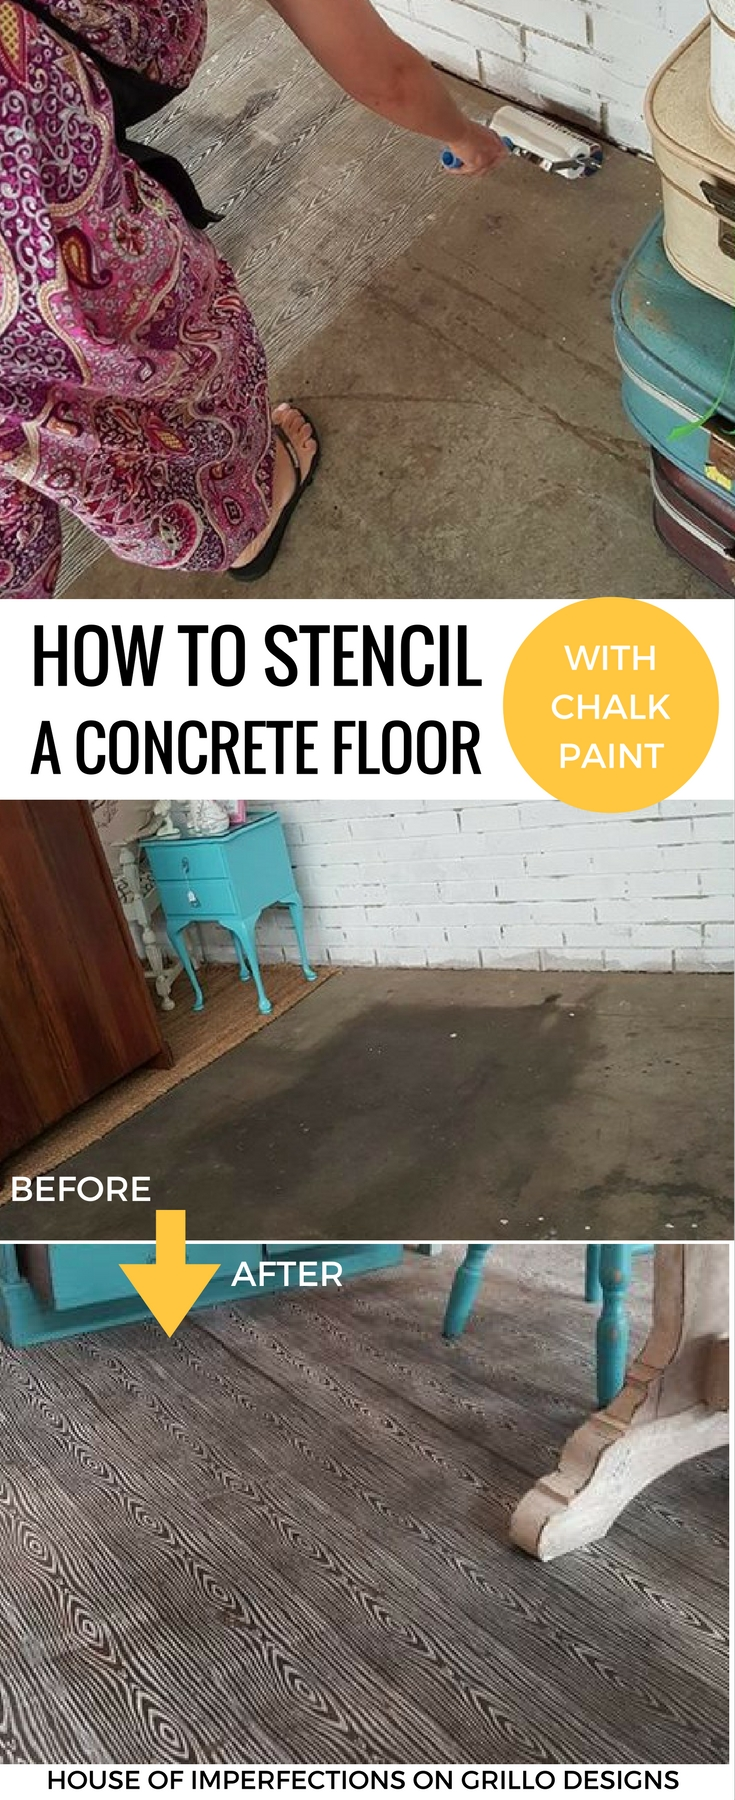 How To Stencil Concrete Floors With Chalk Paint